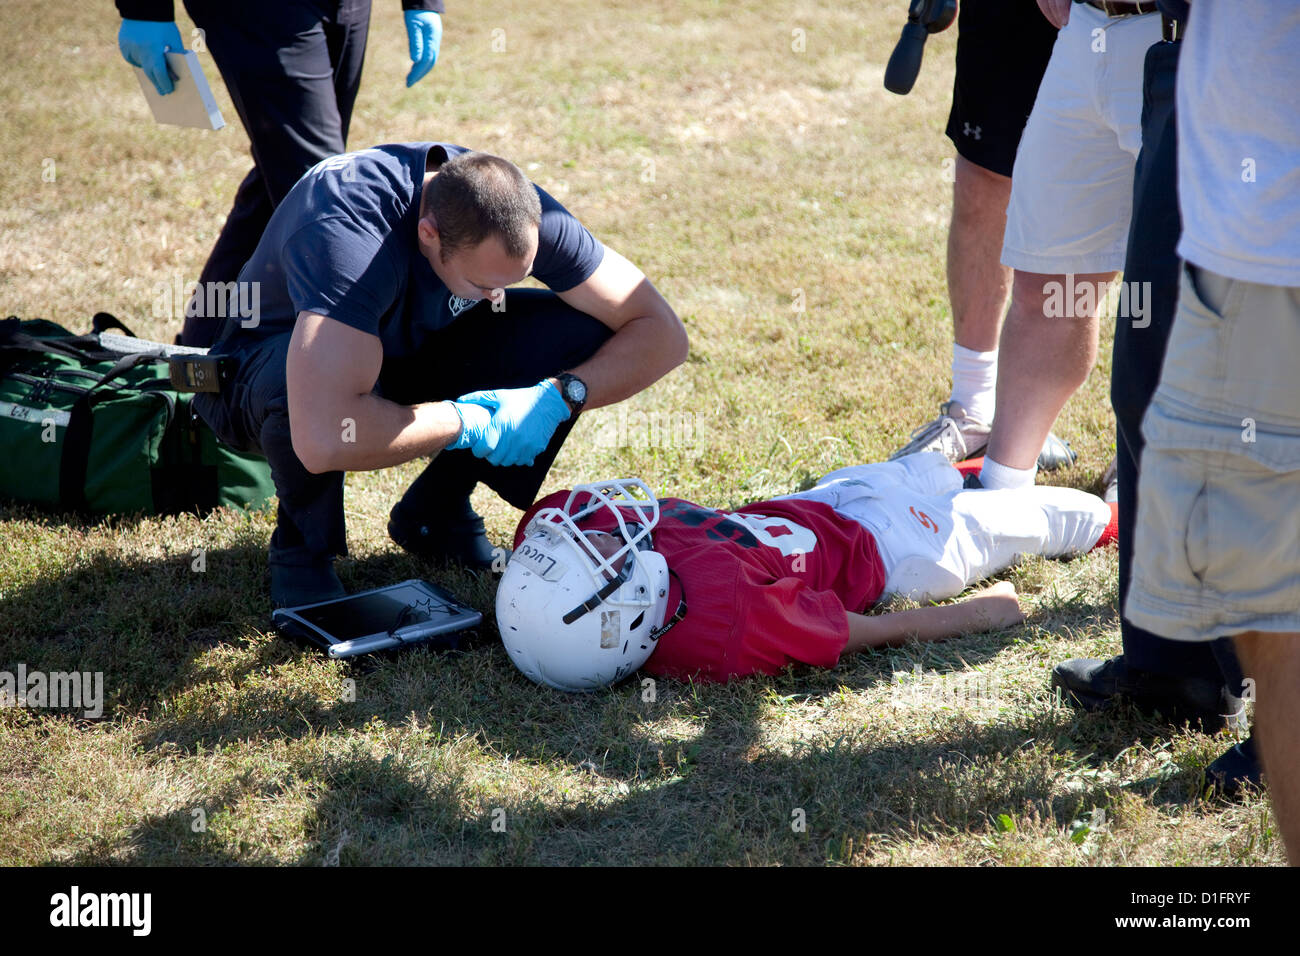 Paramedic talking to injured football player with a possible concussion. Conway Height's Park St Paul Minnesota - Stock Image